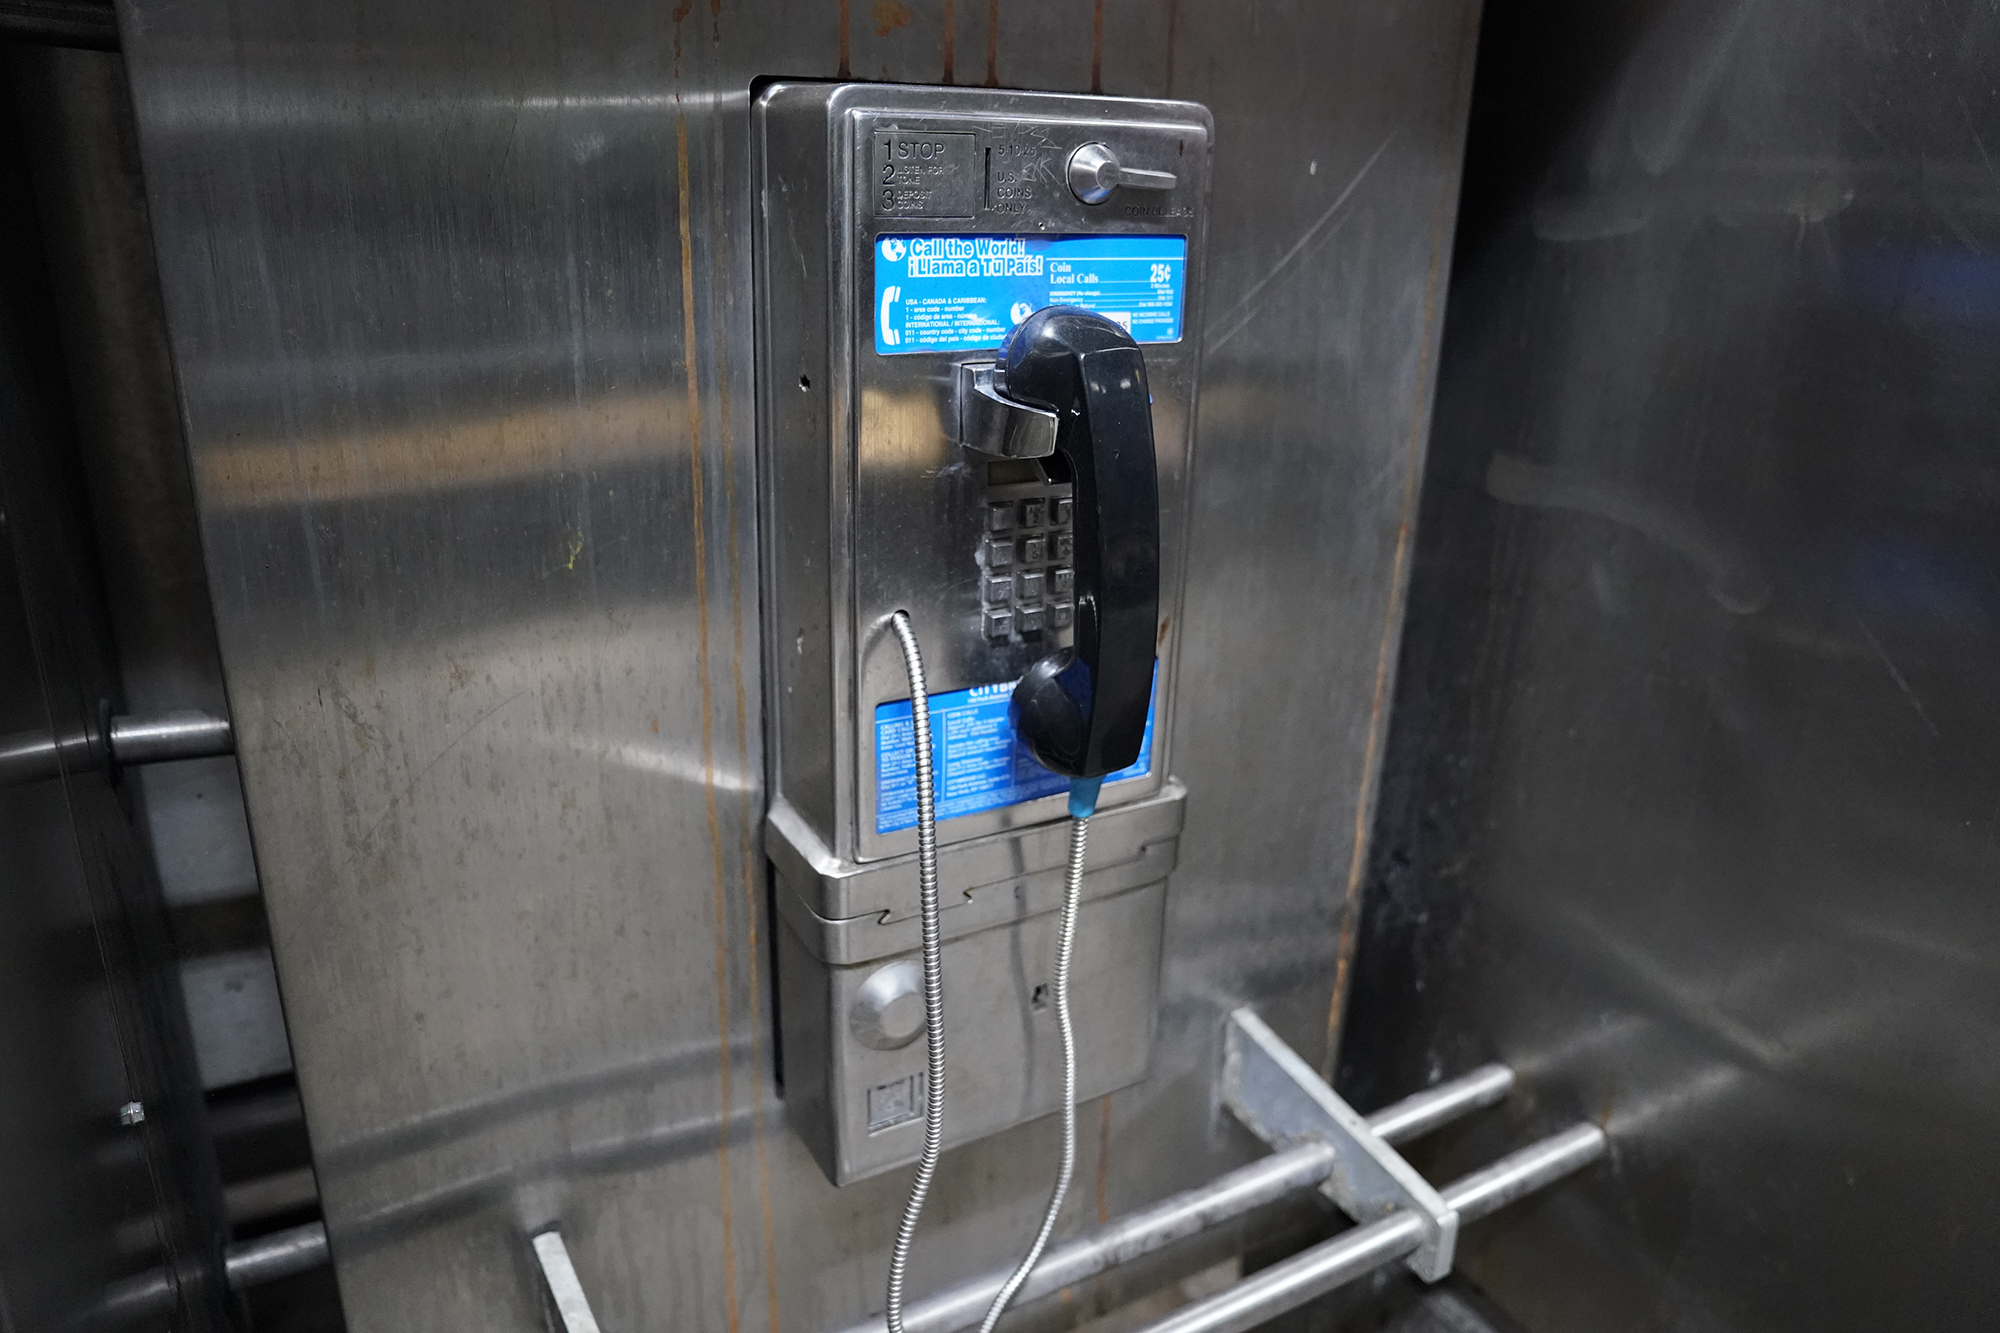 NYC will remove city's remaining payphones: report